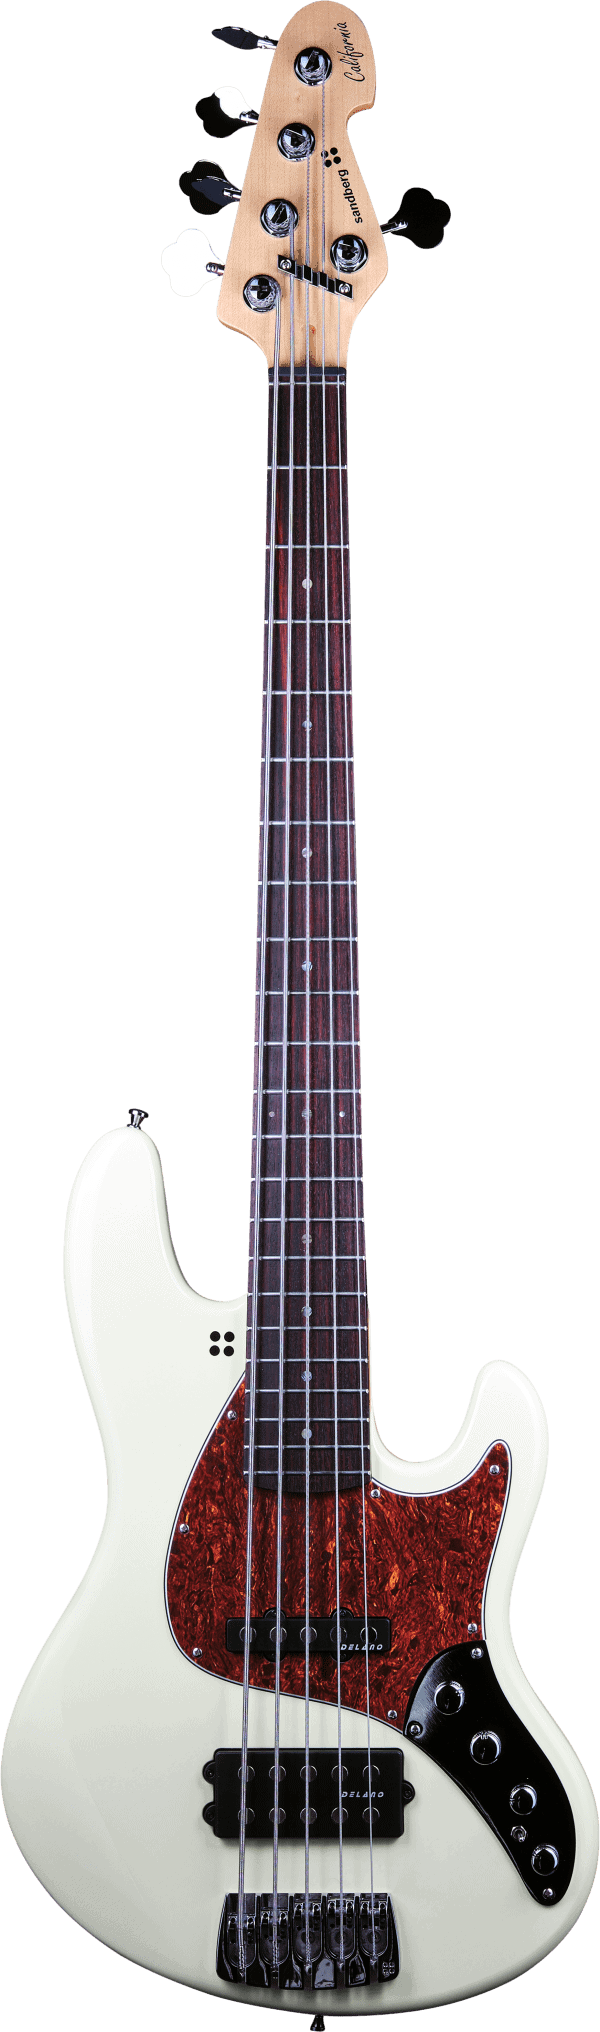 Sandberg TM5 Cream White High Gloss